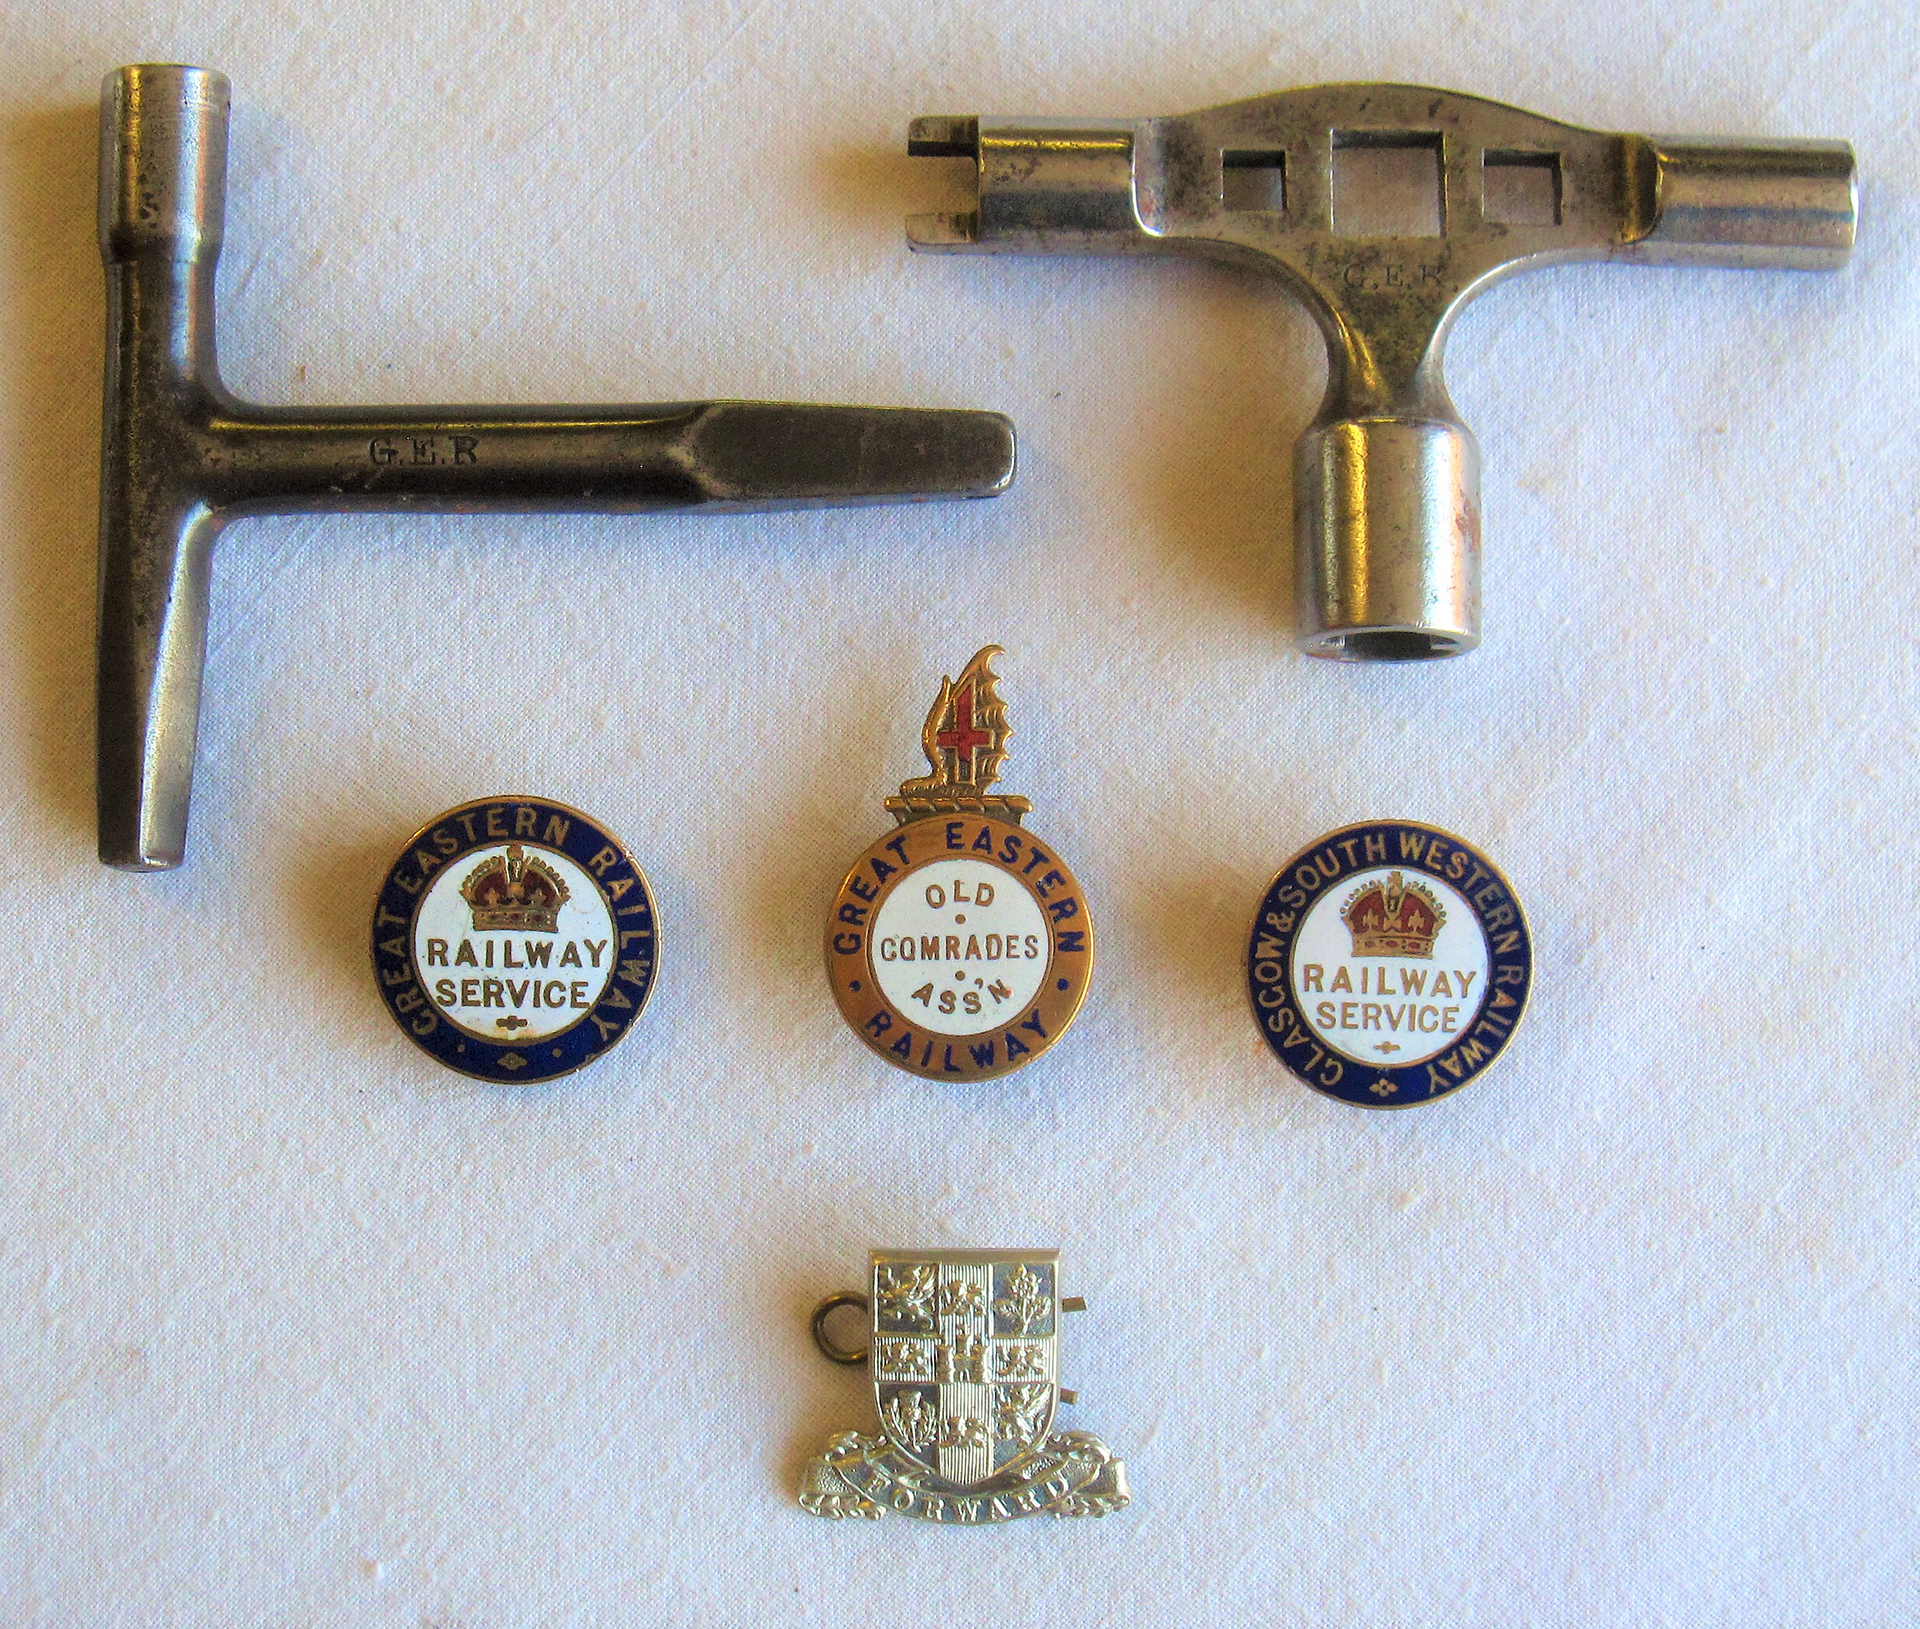 A Lot containing railway badges and carriage keys. 2 x WW1 Lapel Service Badges GREAT EASTERN